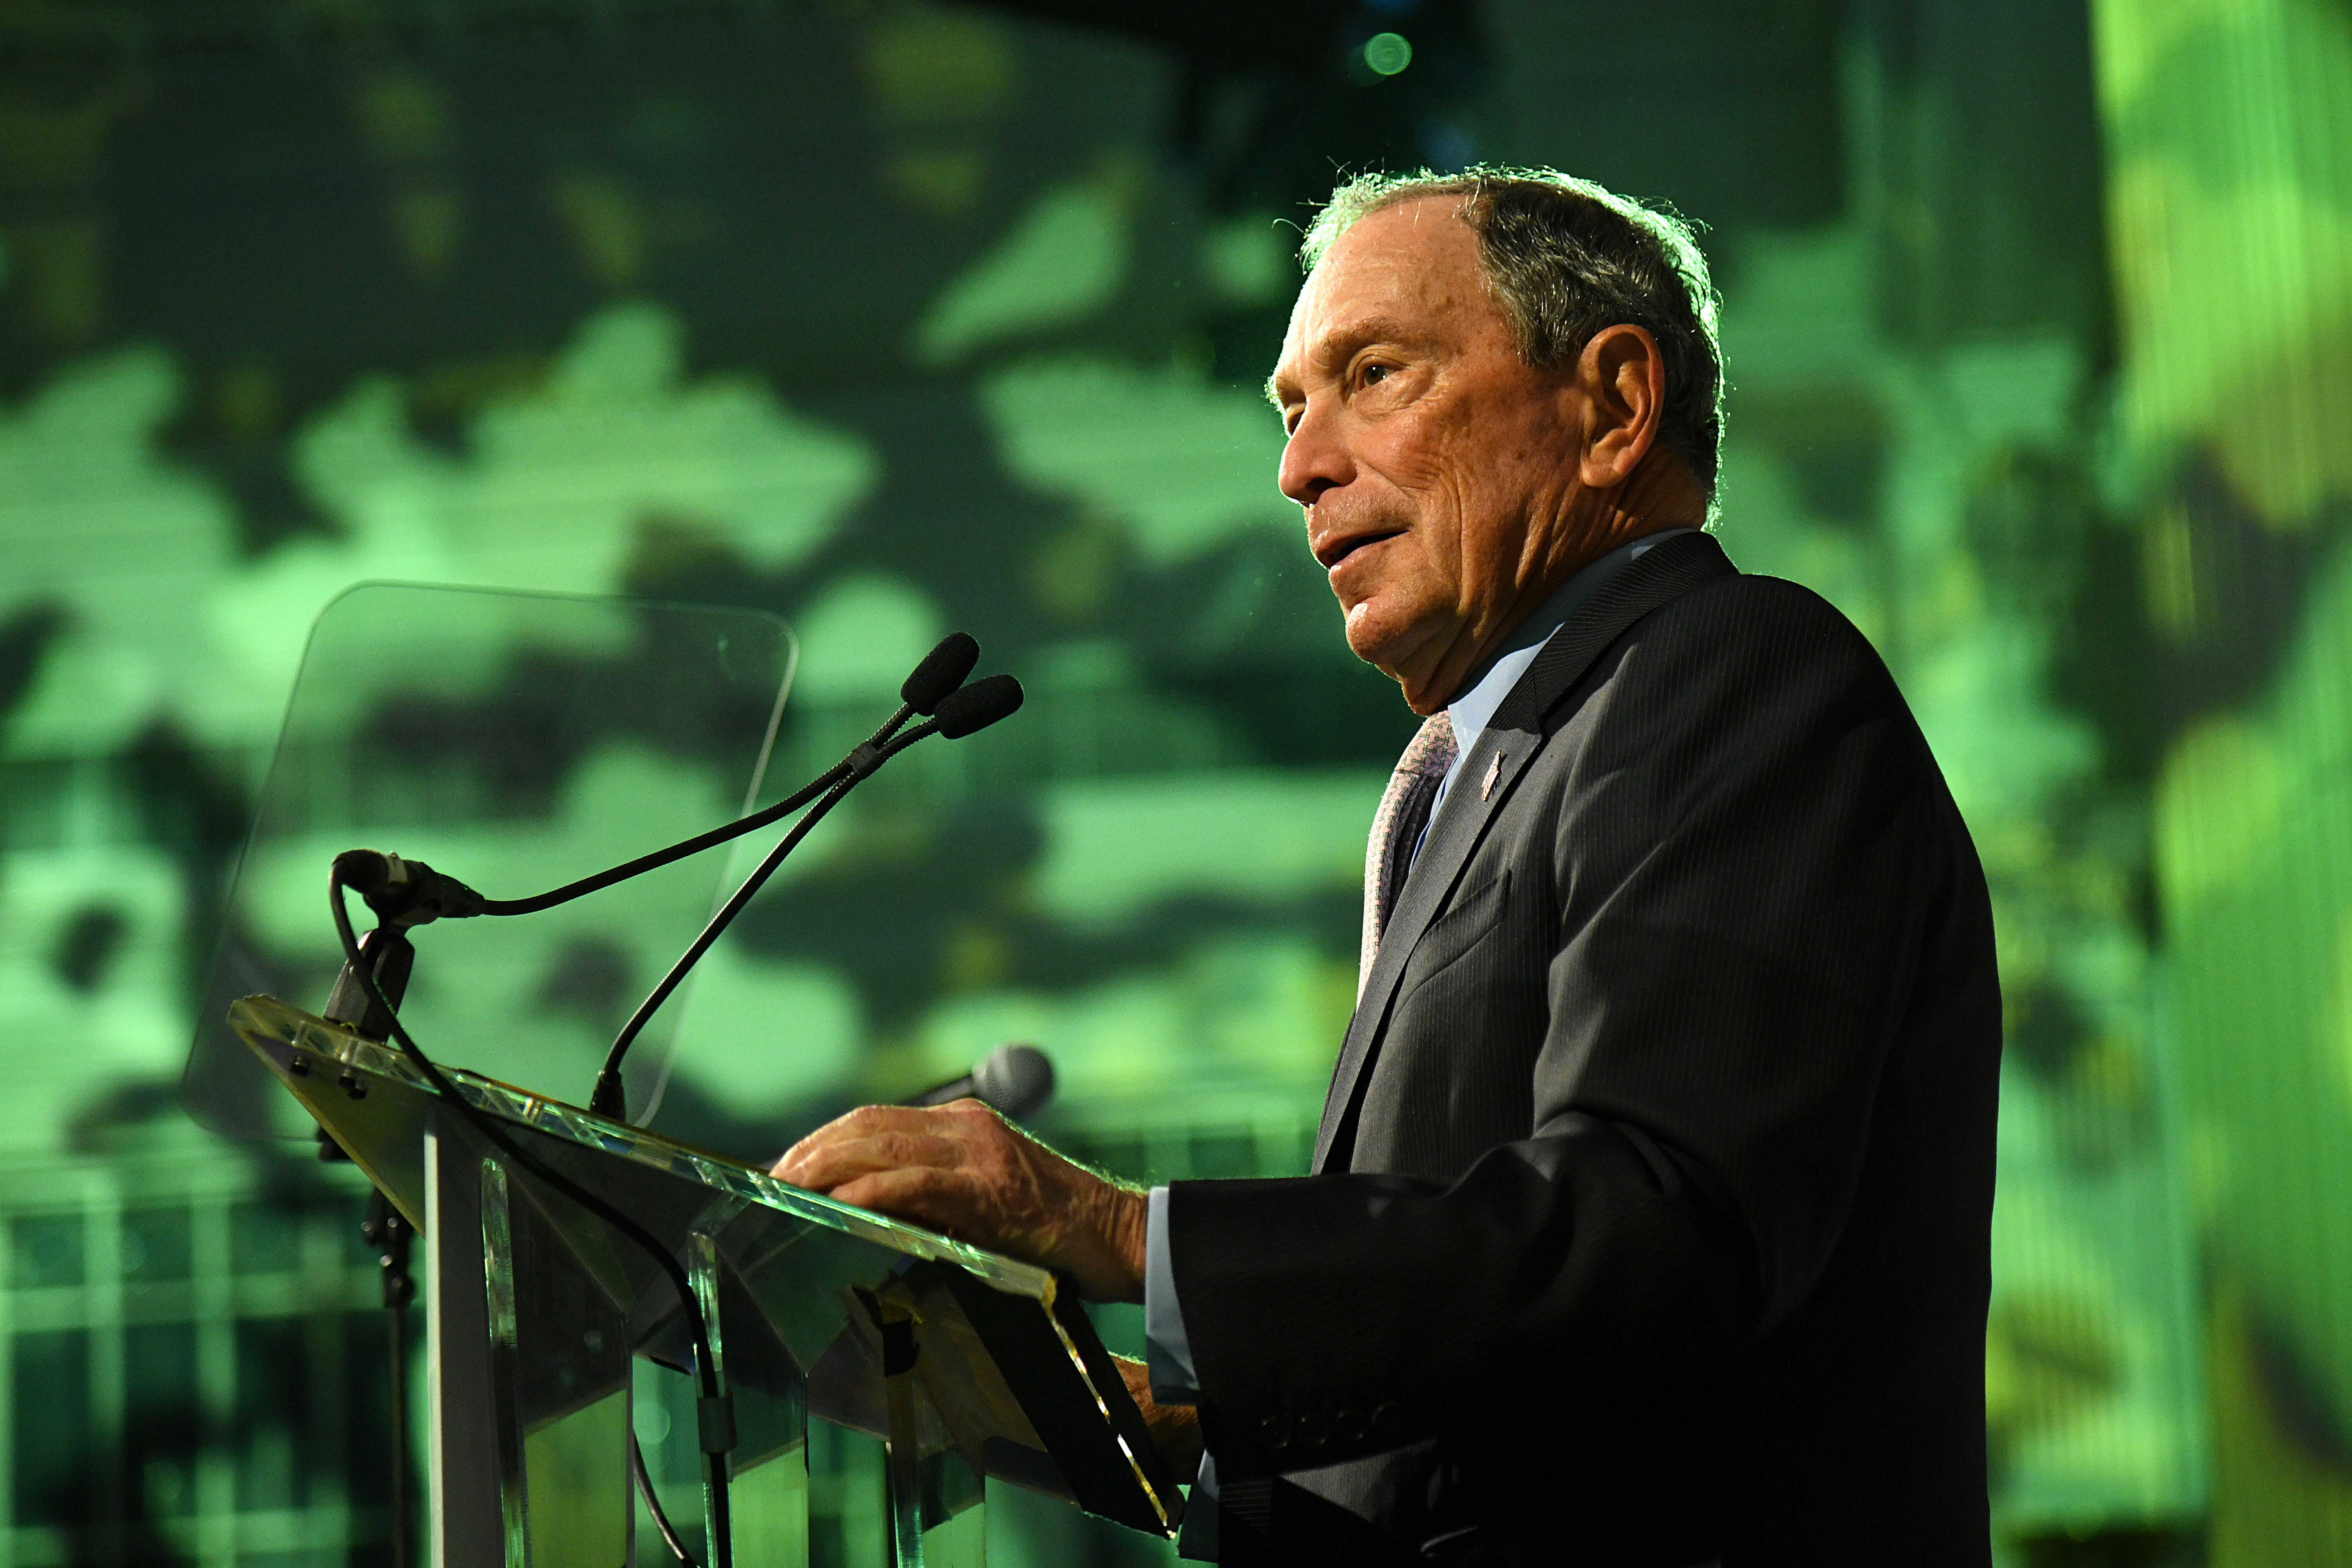 Democrats aren't sure Bloomberg should run for president. A new poll suggests voters aren't either.